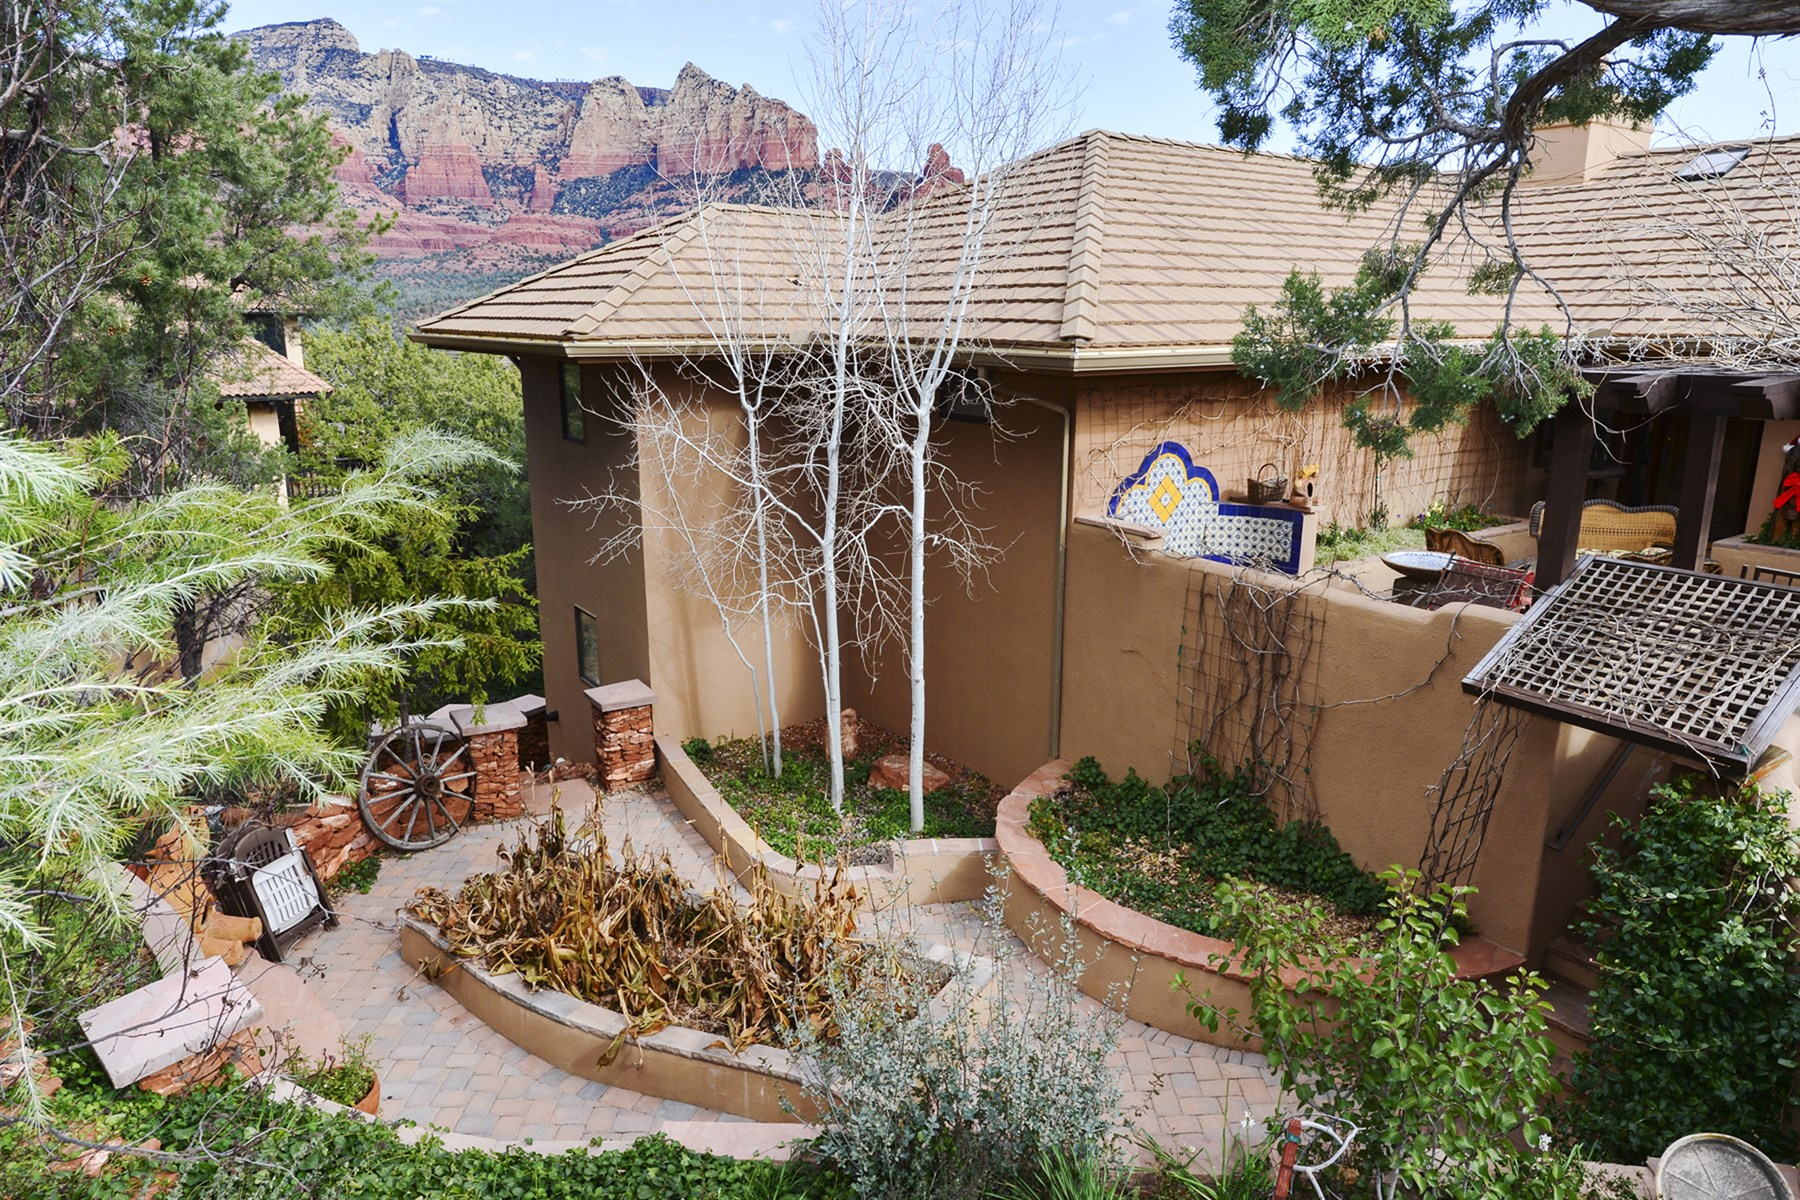 Maison unifamiliale pour l Vente à Contemporary Spanish-style home was gloriously remodeled. 240 Ridge Rd Sedona, Arizona 86336 États-Unis